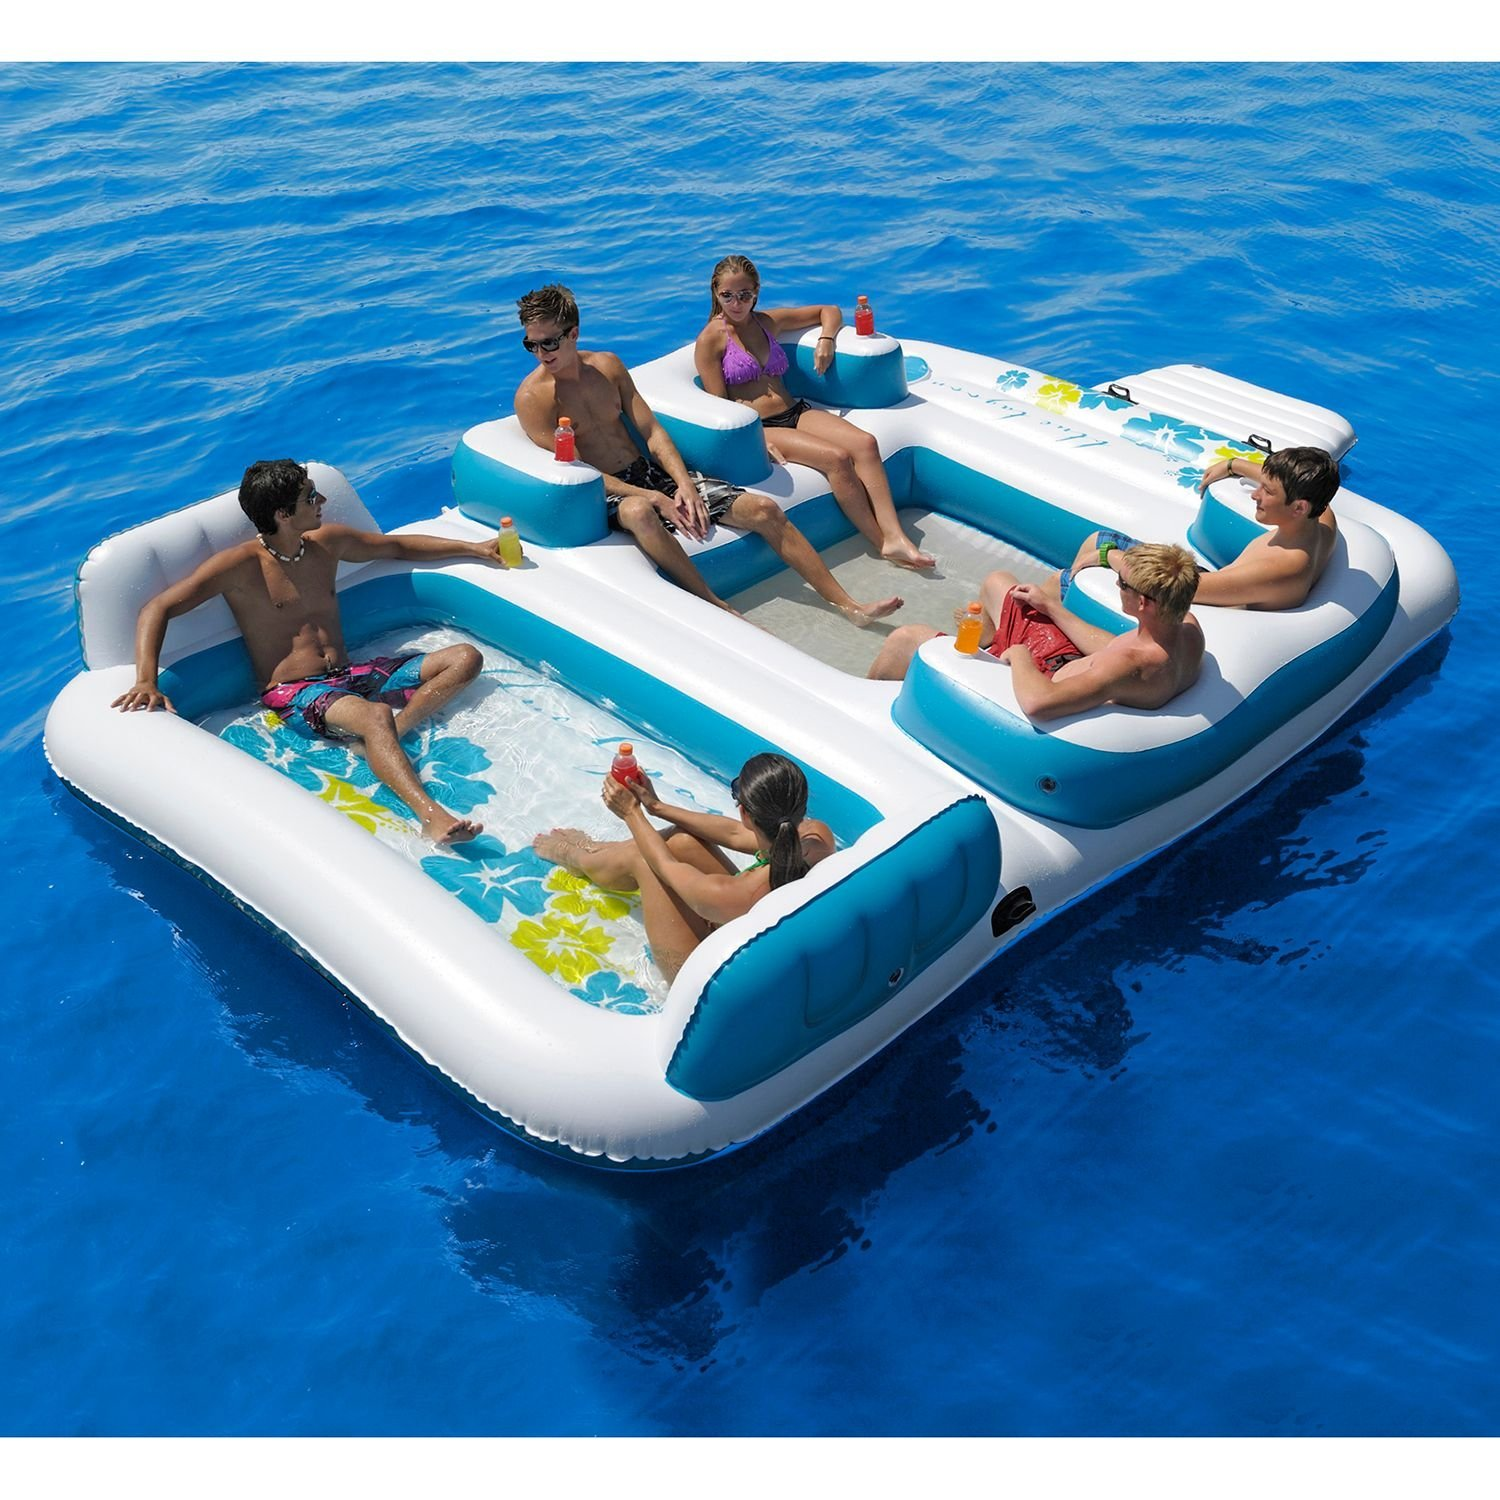 29 Amazing Swimming Pool Game Items For Fun Loving People This Summer